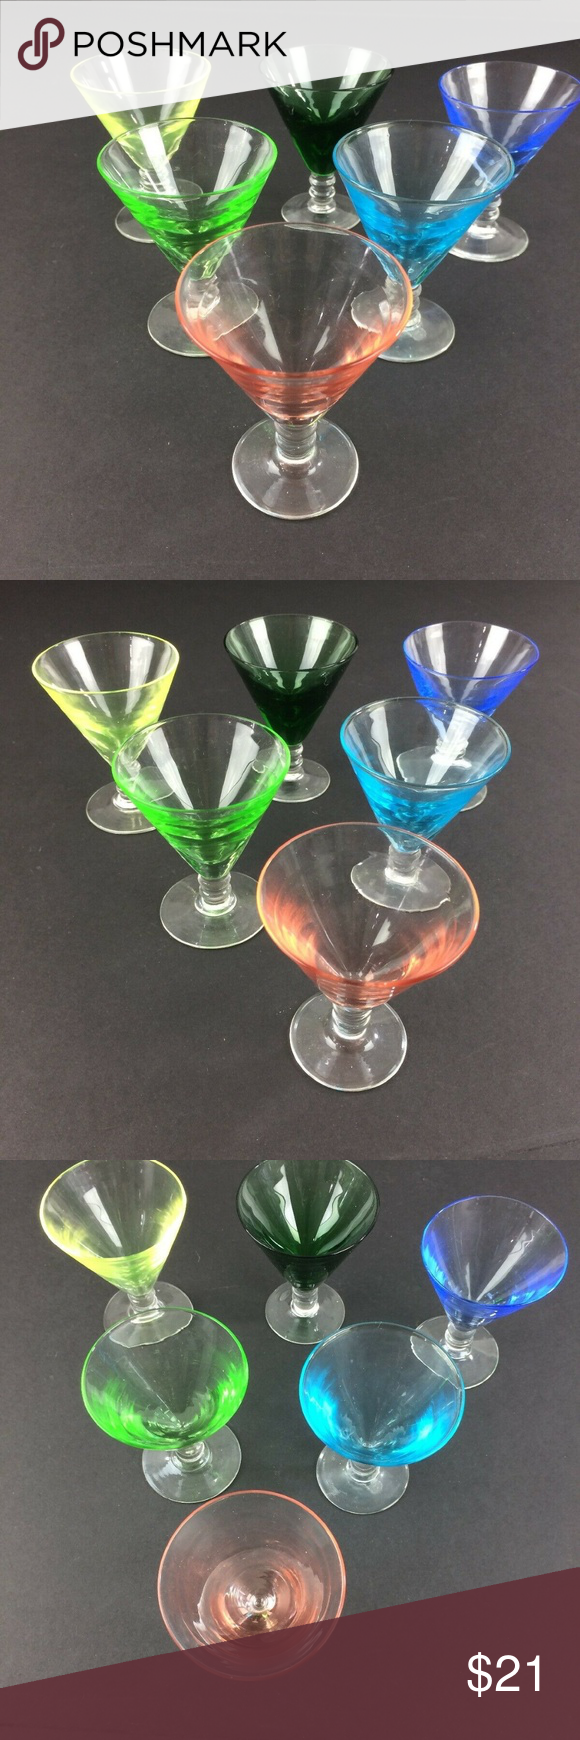 6 Vintage Cordial / Shot Glasses Multi Colored in 2020